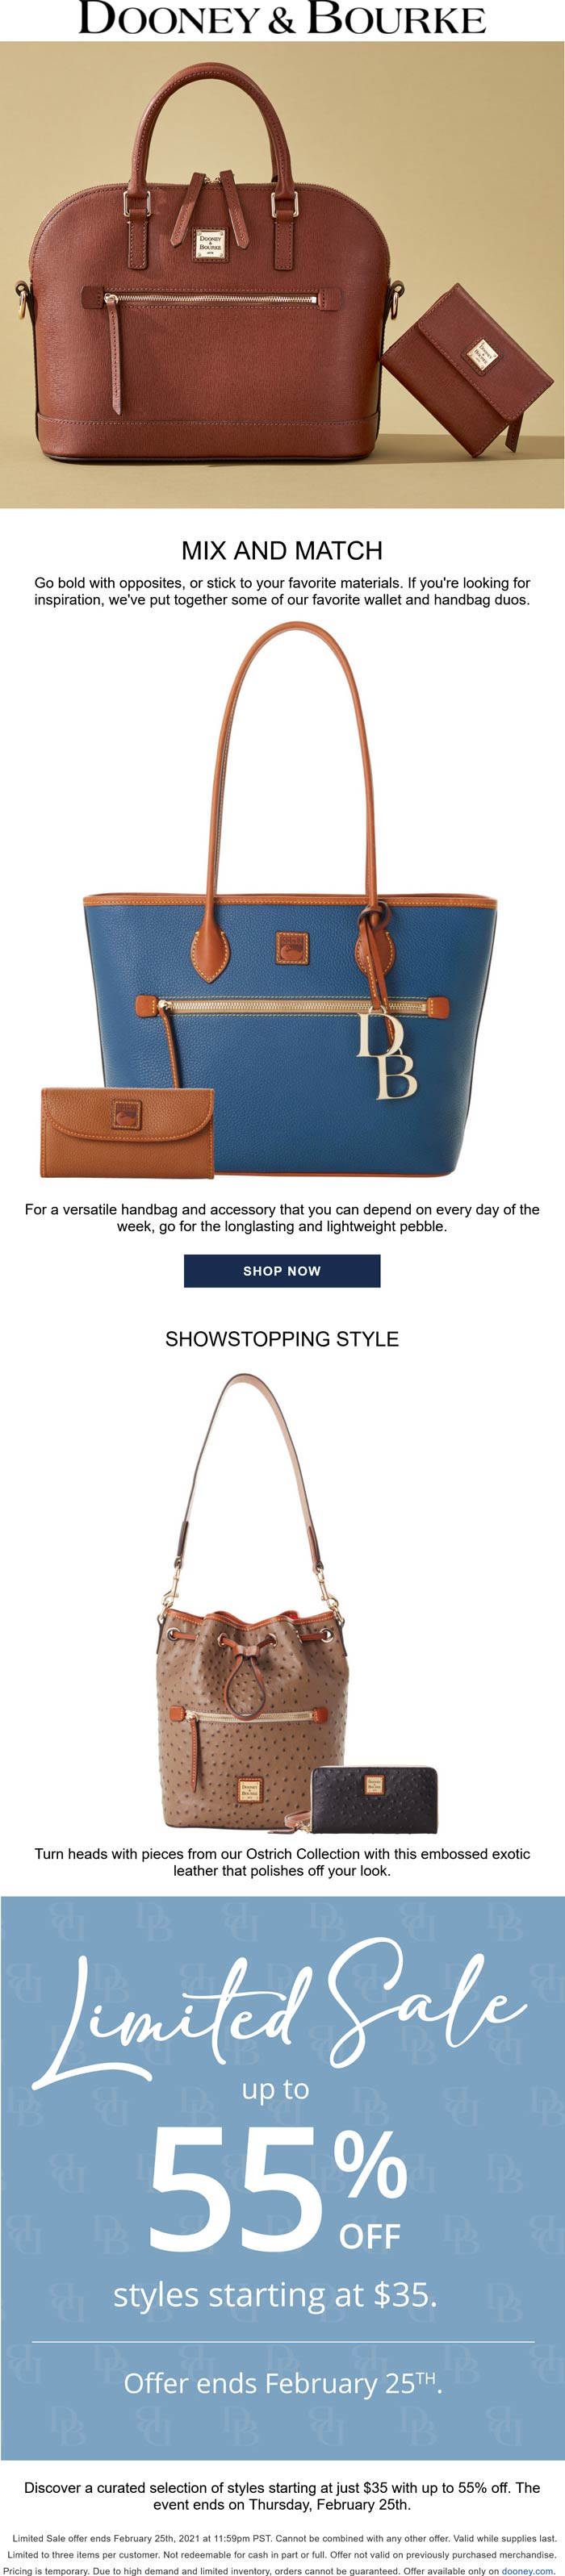 Dooney & Bourke stores Coupon  Starting at $35 sale going on at Dooney & Bourke online #dooneybourke